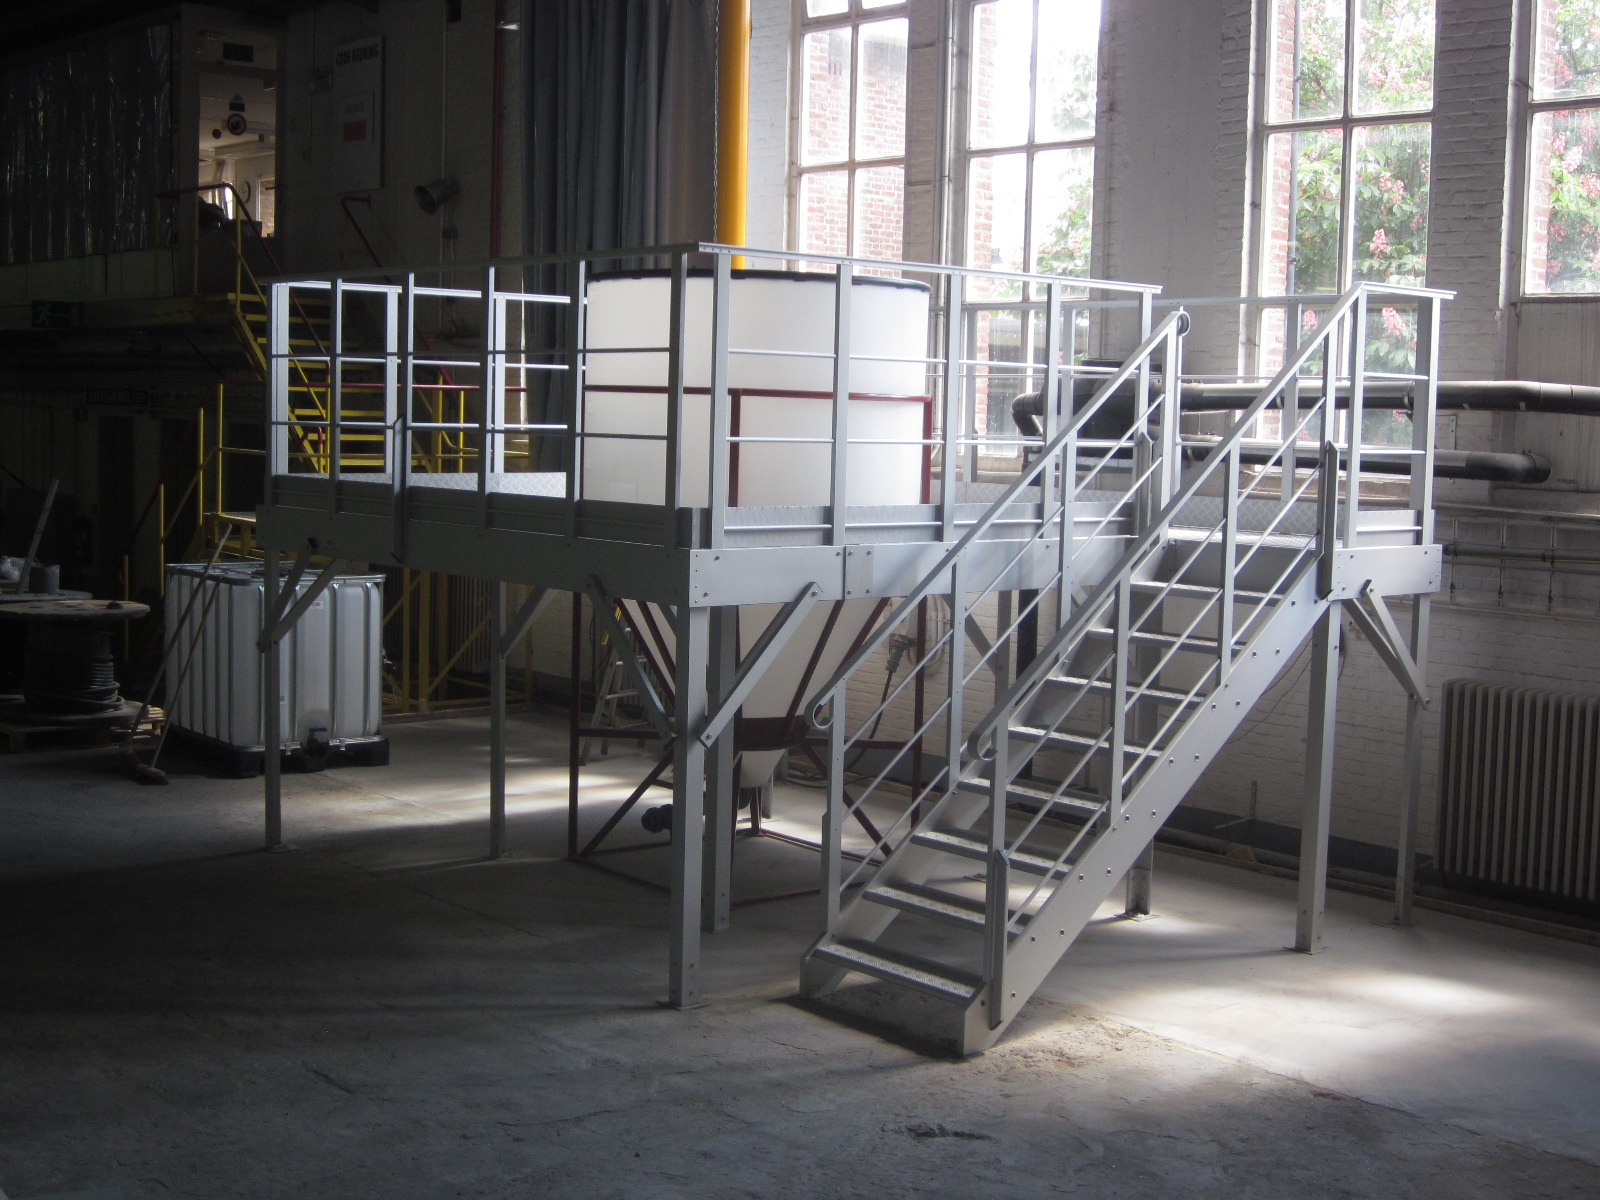 JOMY specializes in a wide range of products including stairs, specialty ladders, walkways, stepladders, custom constructions and other safety accessories. All products are produced from anodized light weight aluminum.